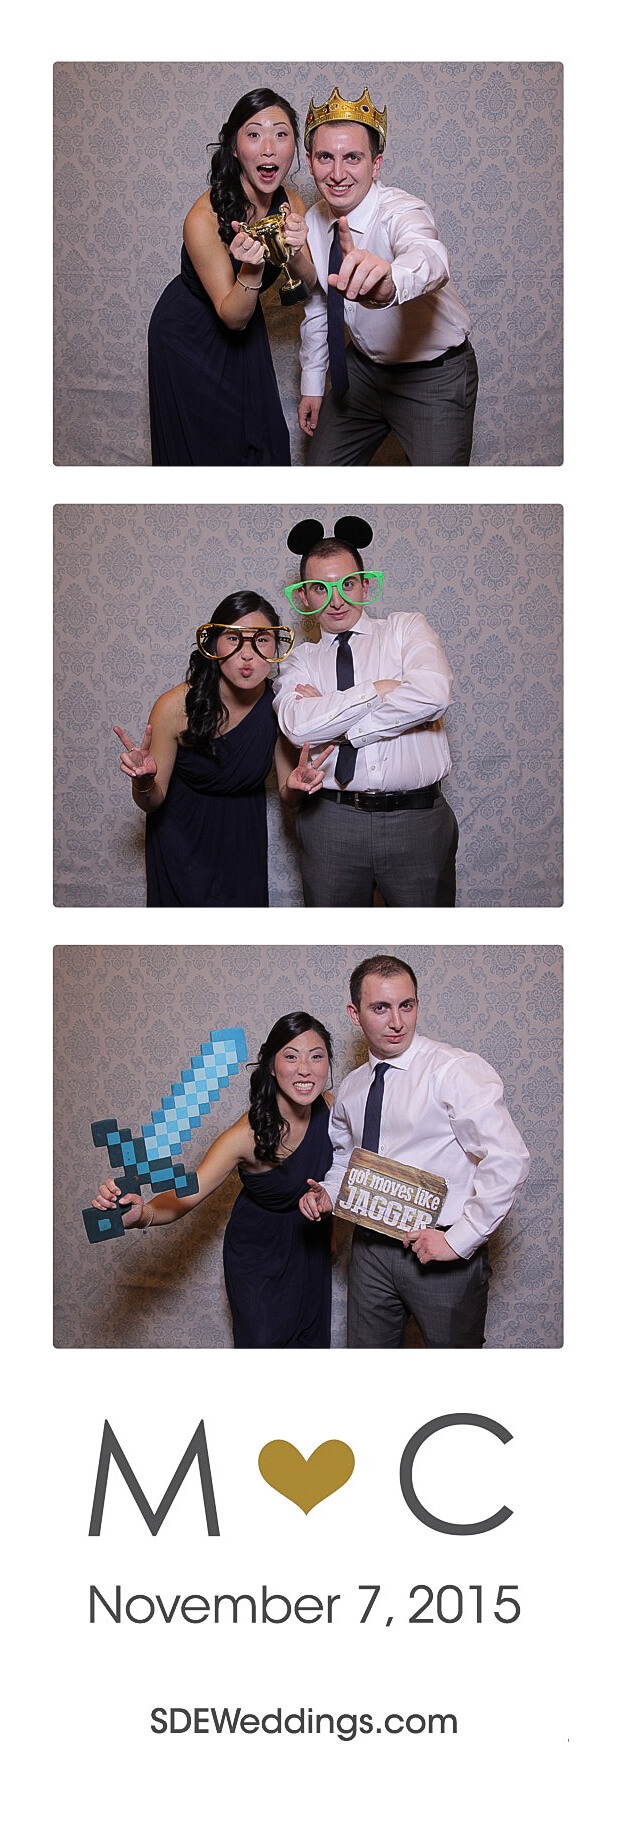 The Club at Bond Head Wedding Photo Booth Rental 7